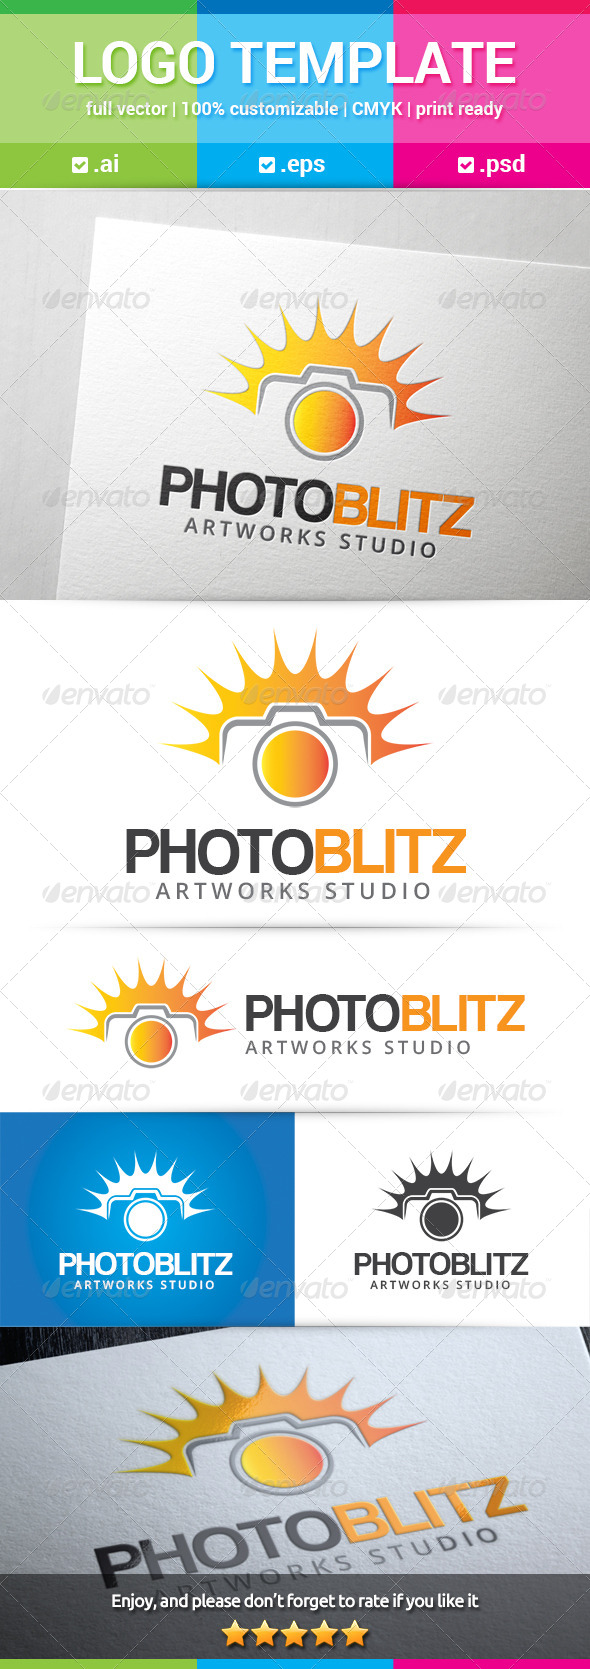 GraphicRiver Photo Blitz Logo 8740103